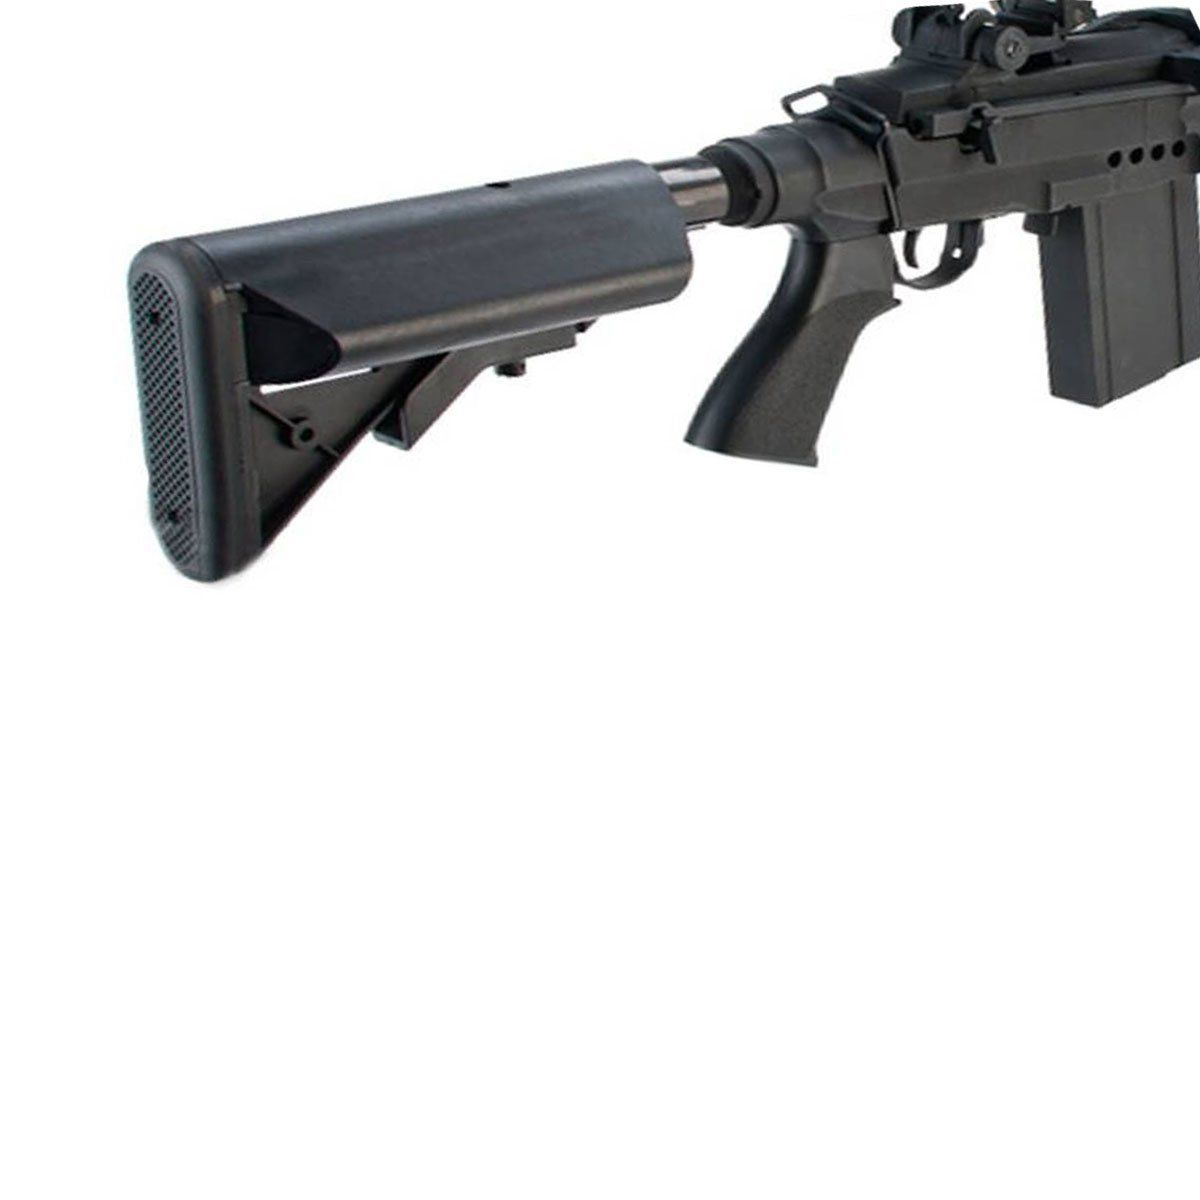 Rifle Airsoft Cyma M14 EBR Full Metal EBB Elétrico Bivolt 6mm